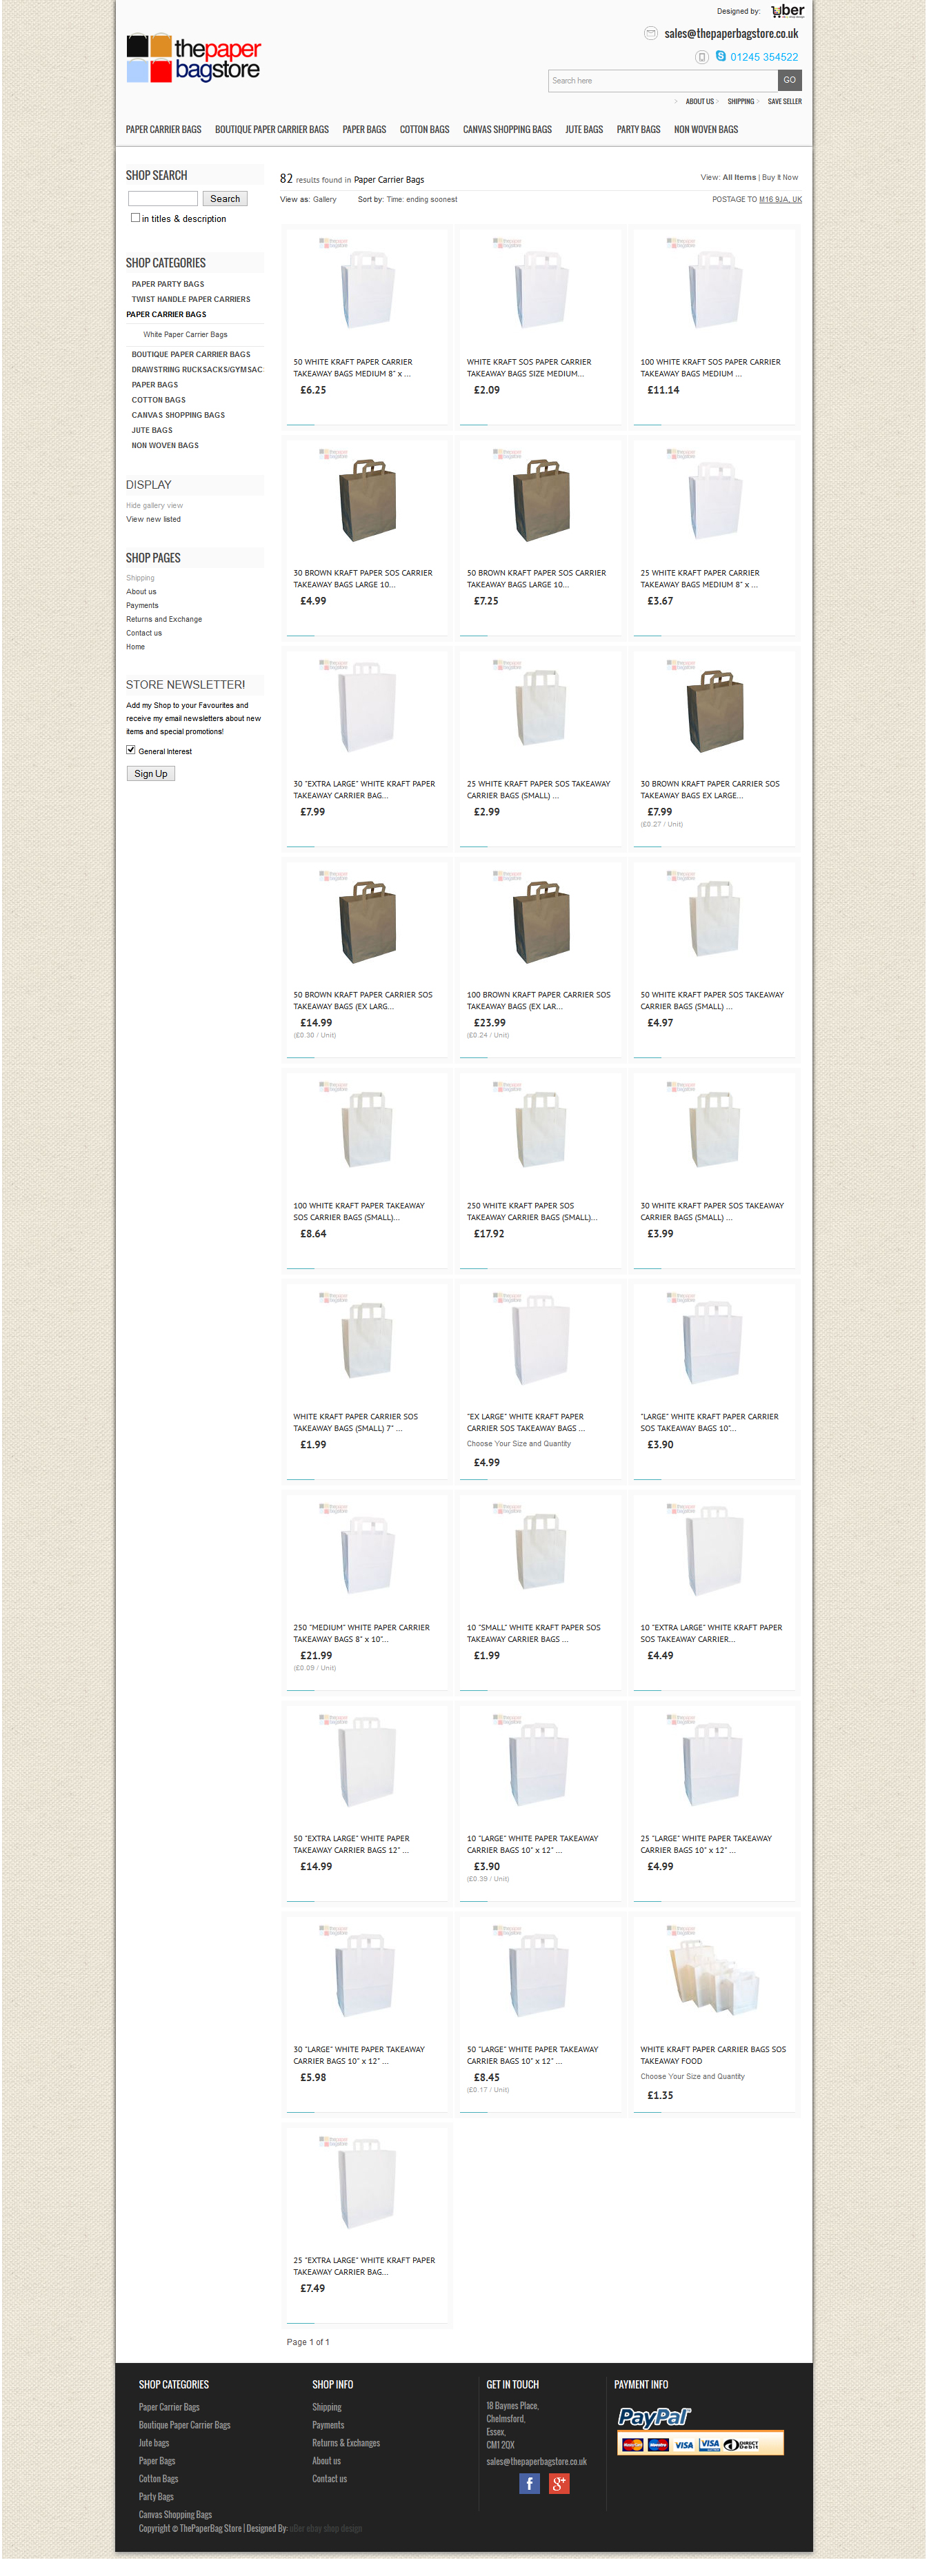 The paper bag store Ltd ebay category page design